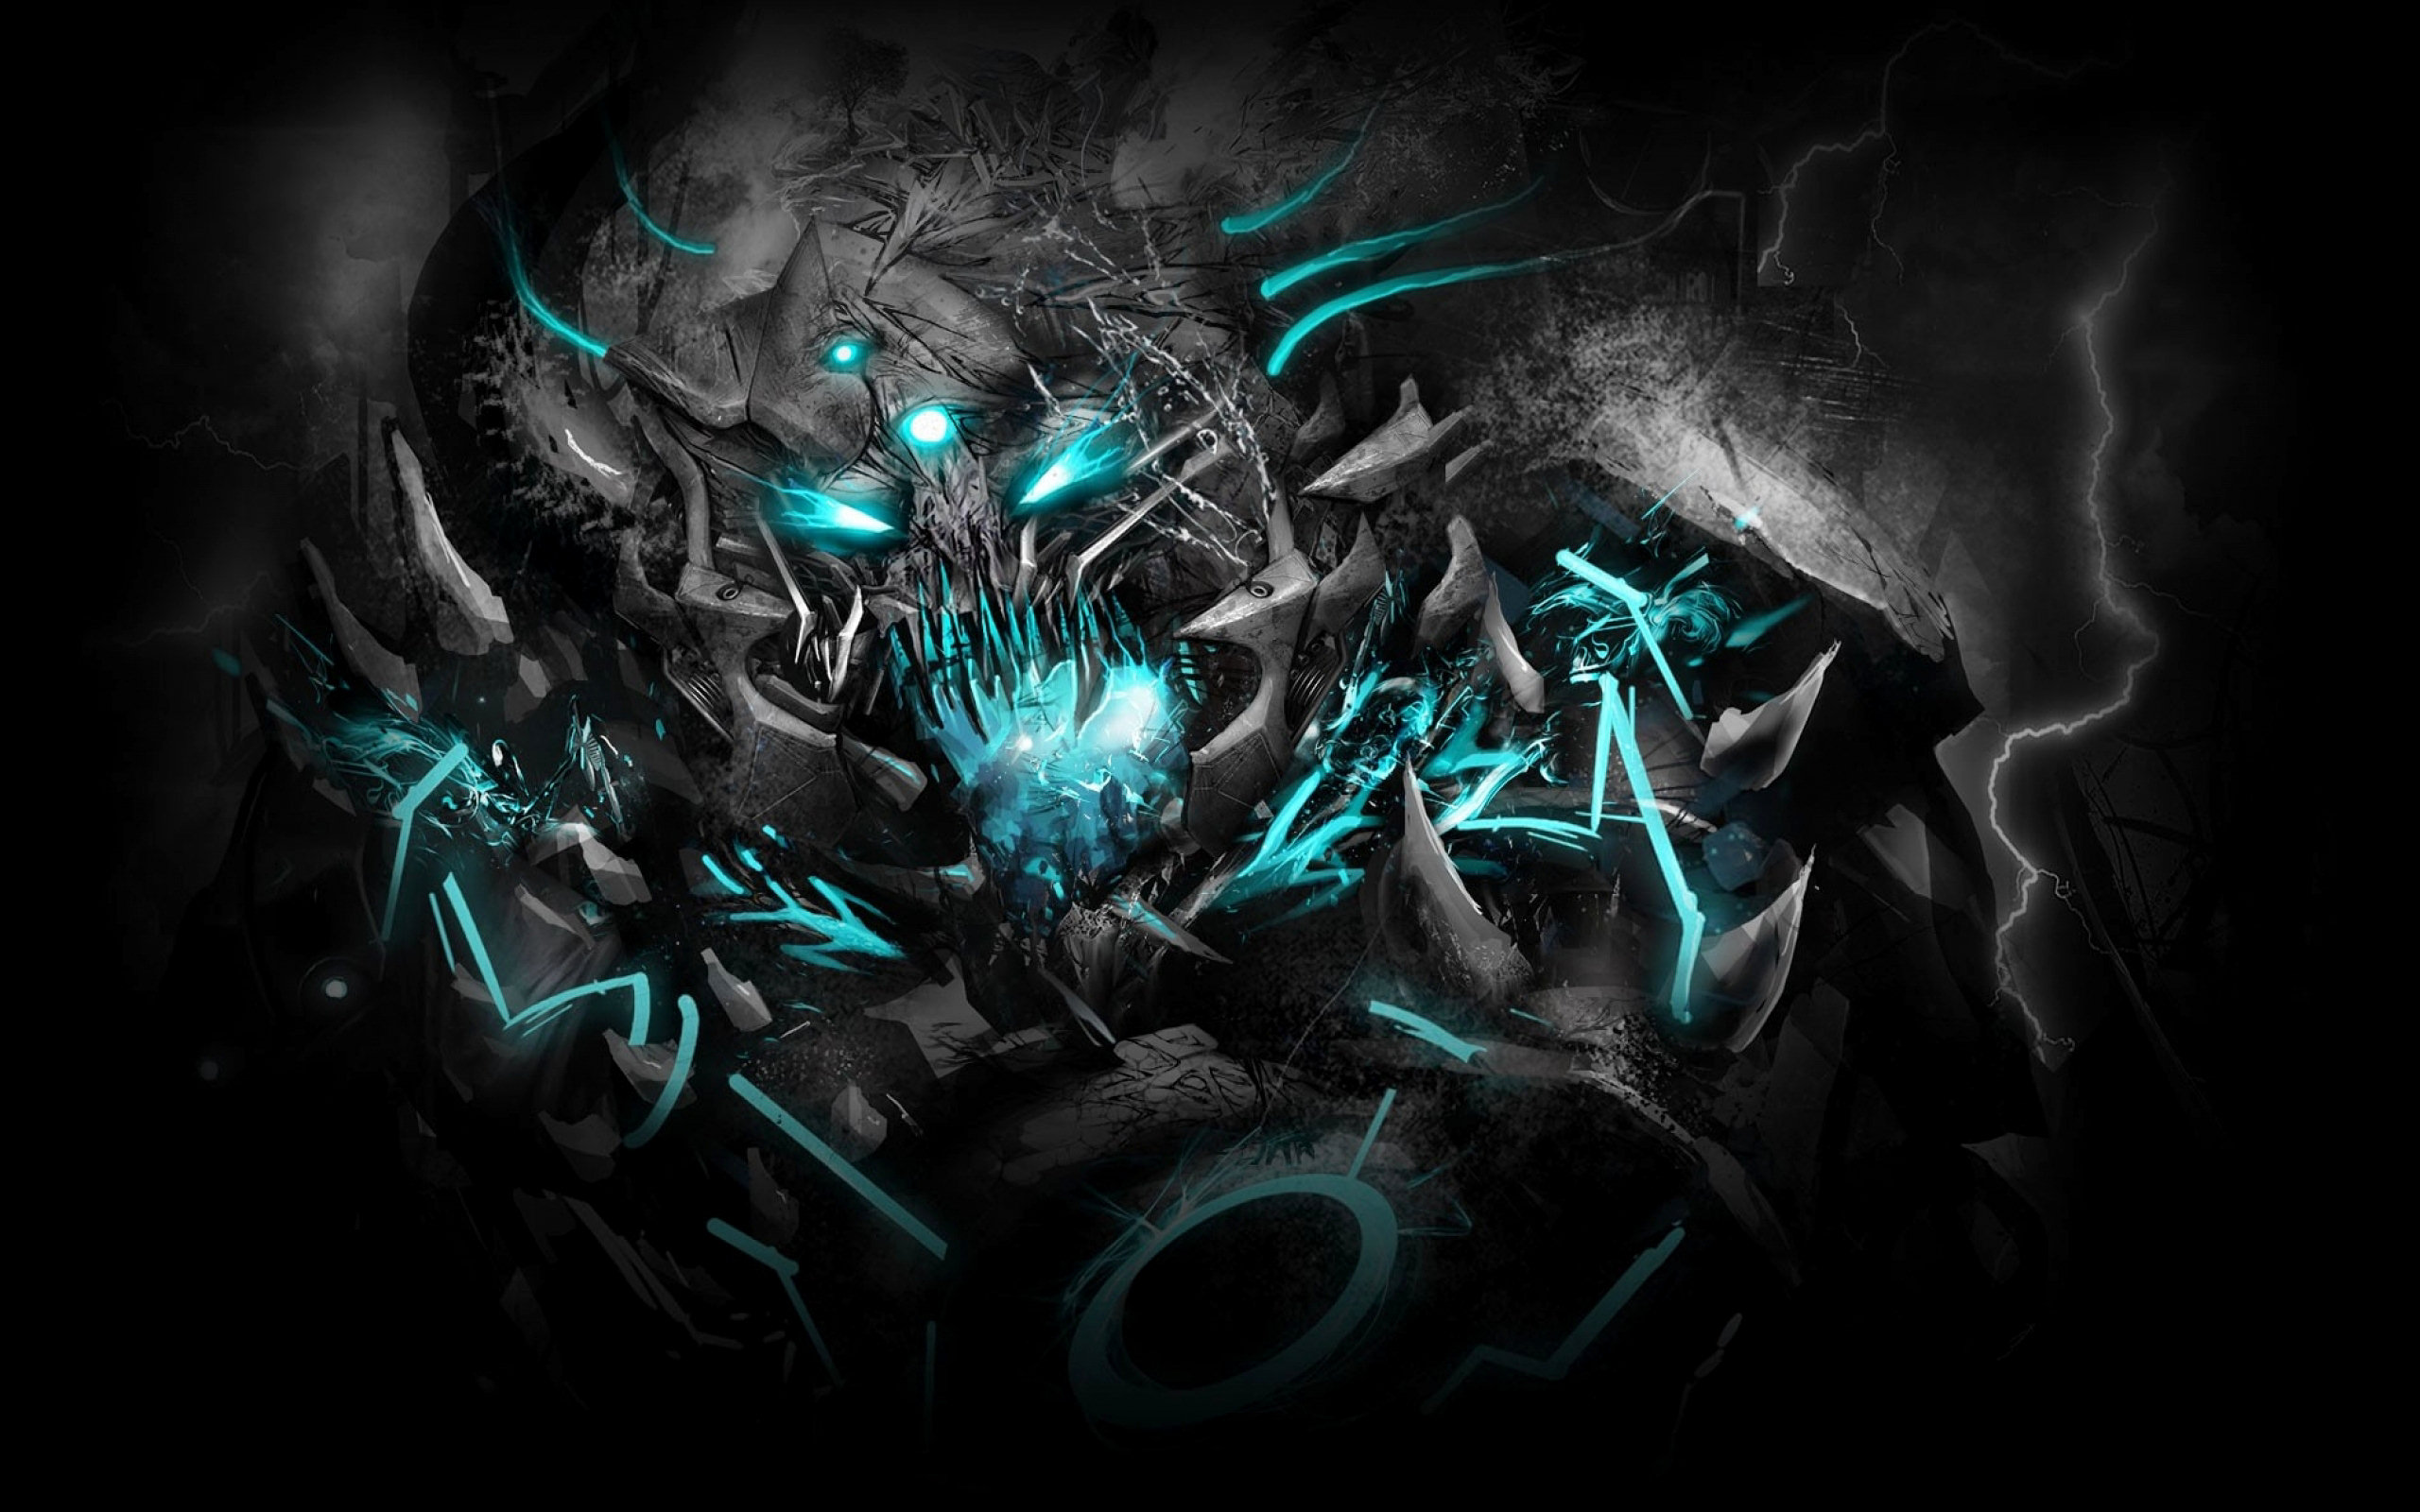 Cool Dubstep Wallpaper